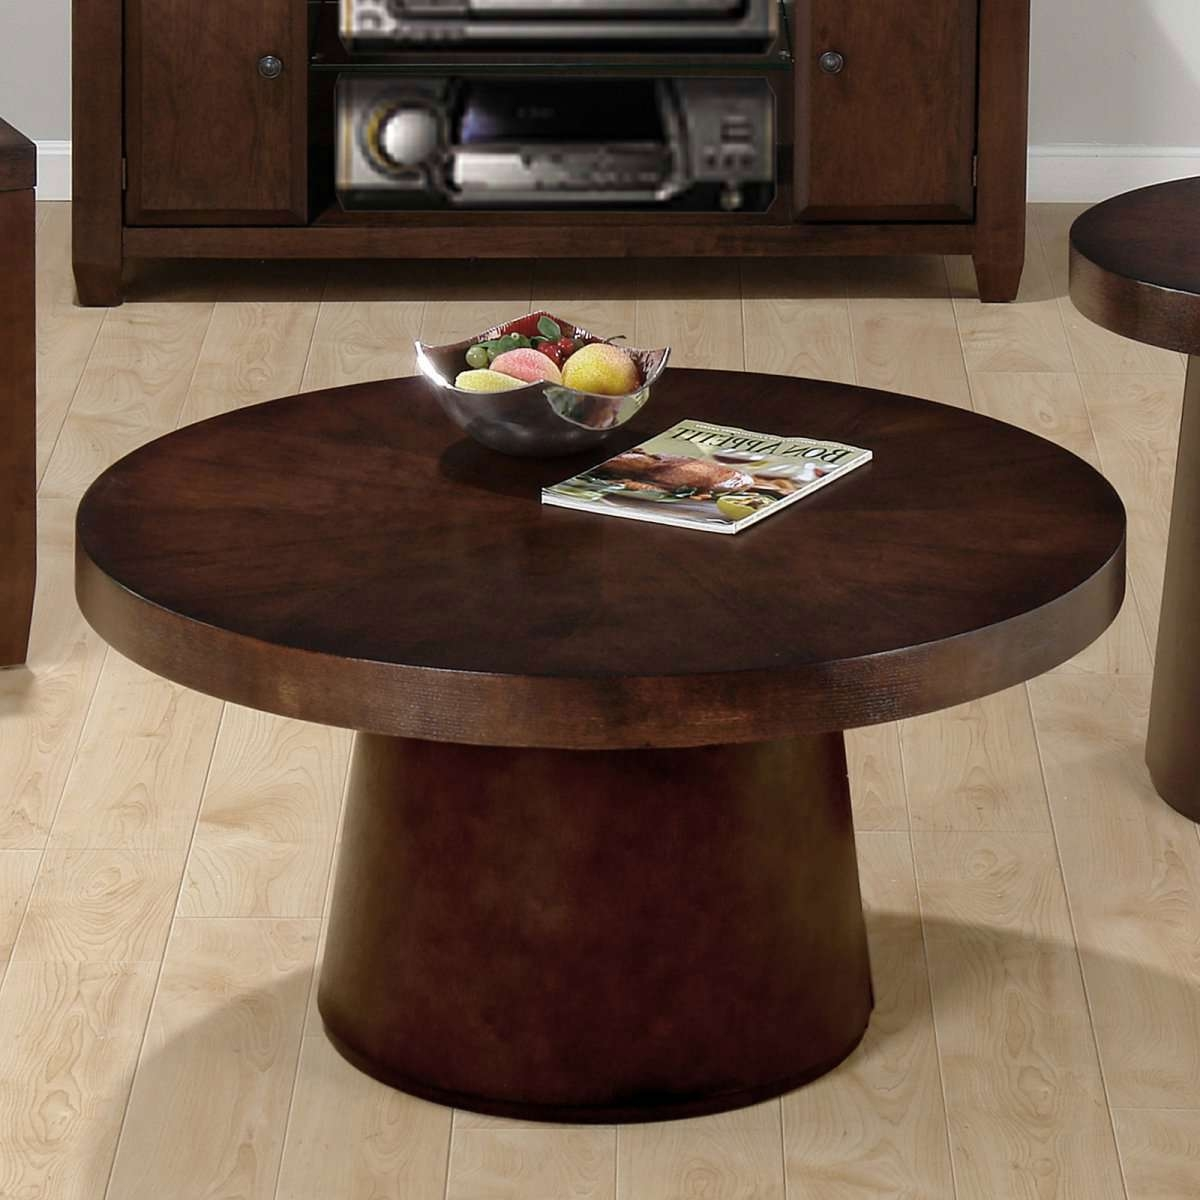 Fashionable Dark Brown Coffee Tables With Inspiring Ideas For Small Coffee Tables Design (View 19 of 20)